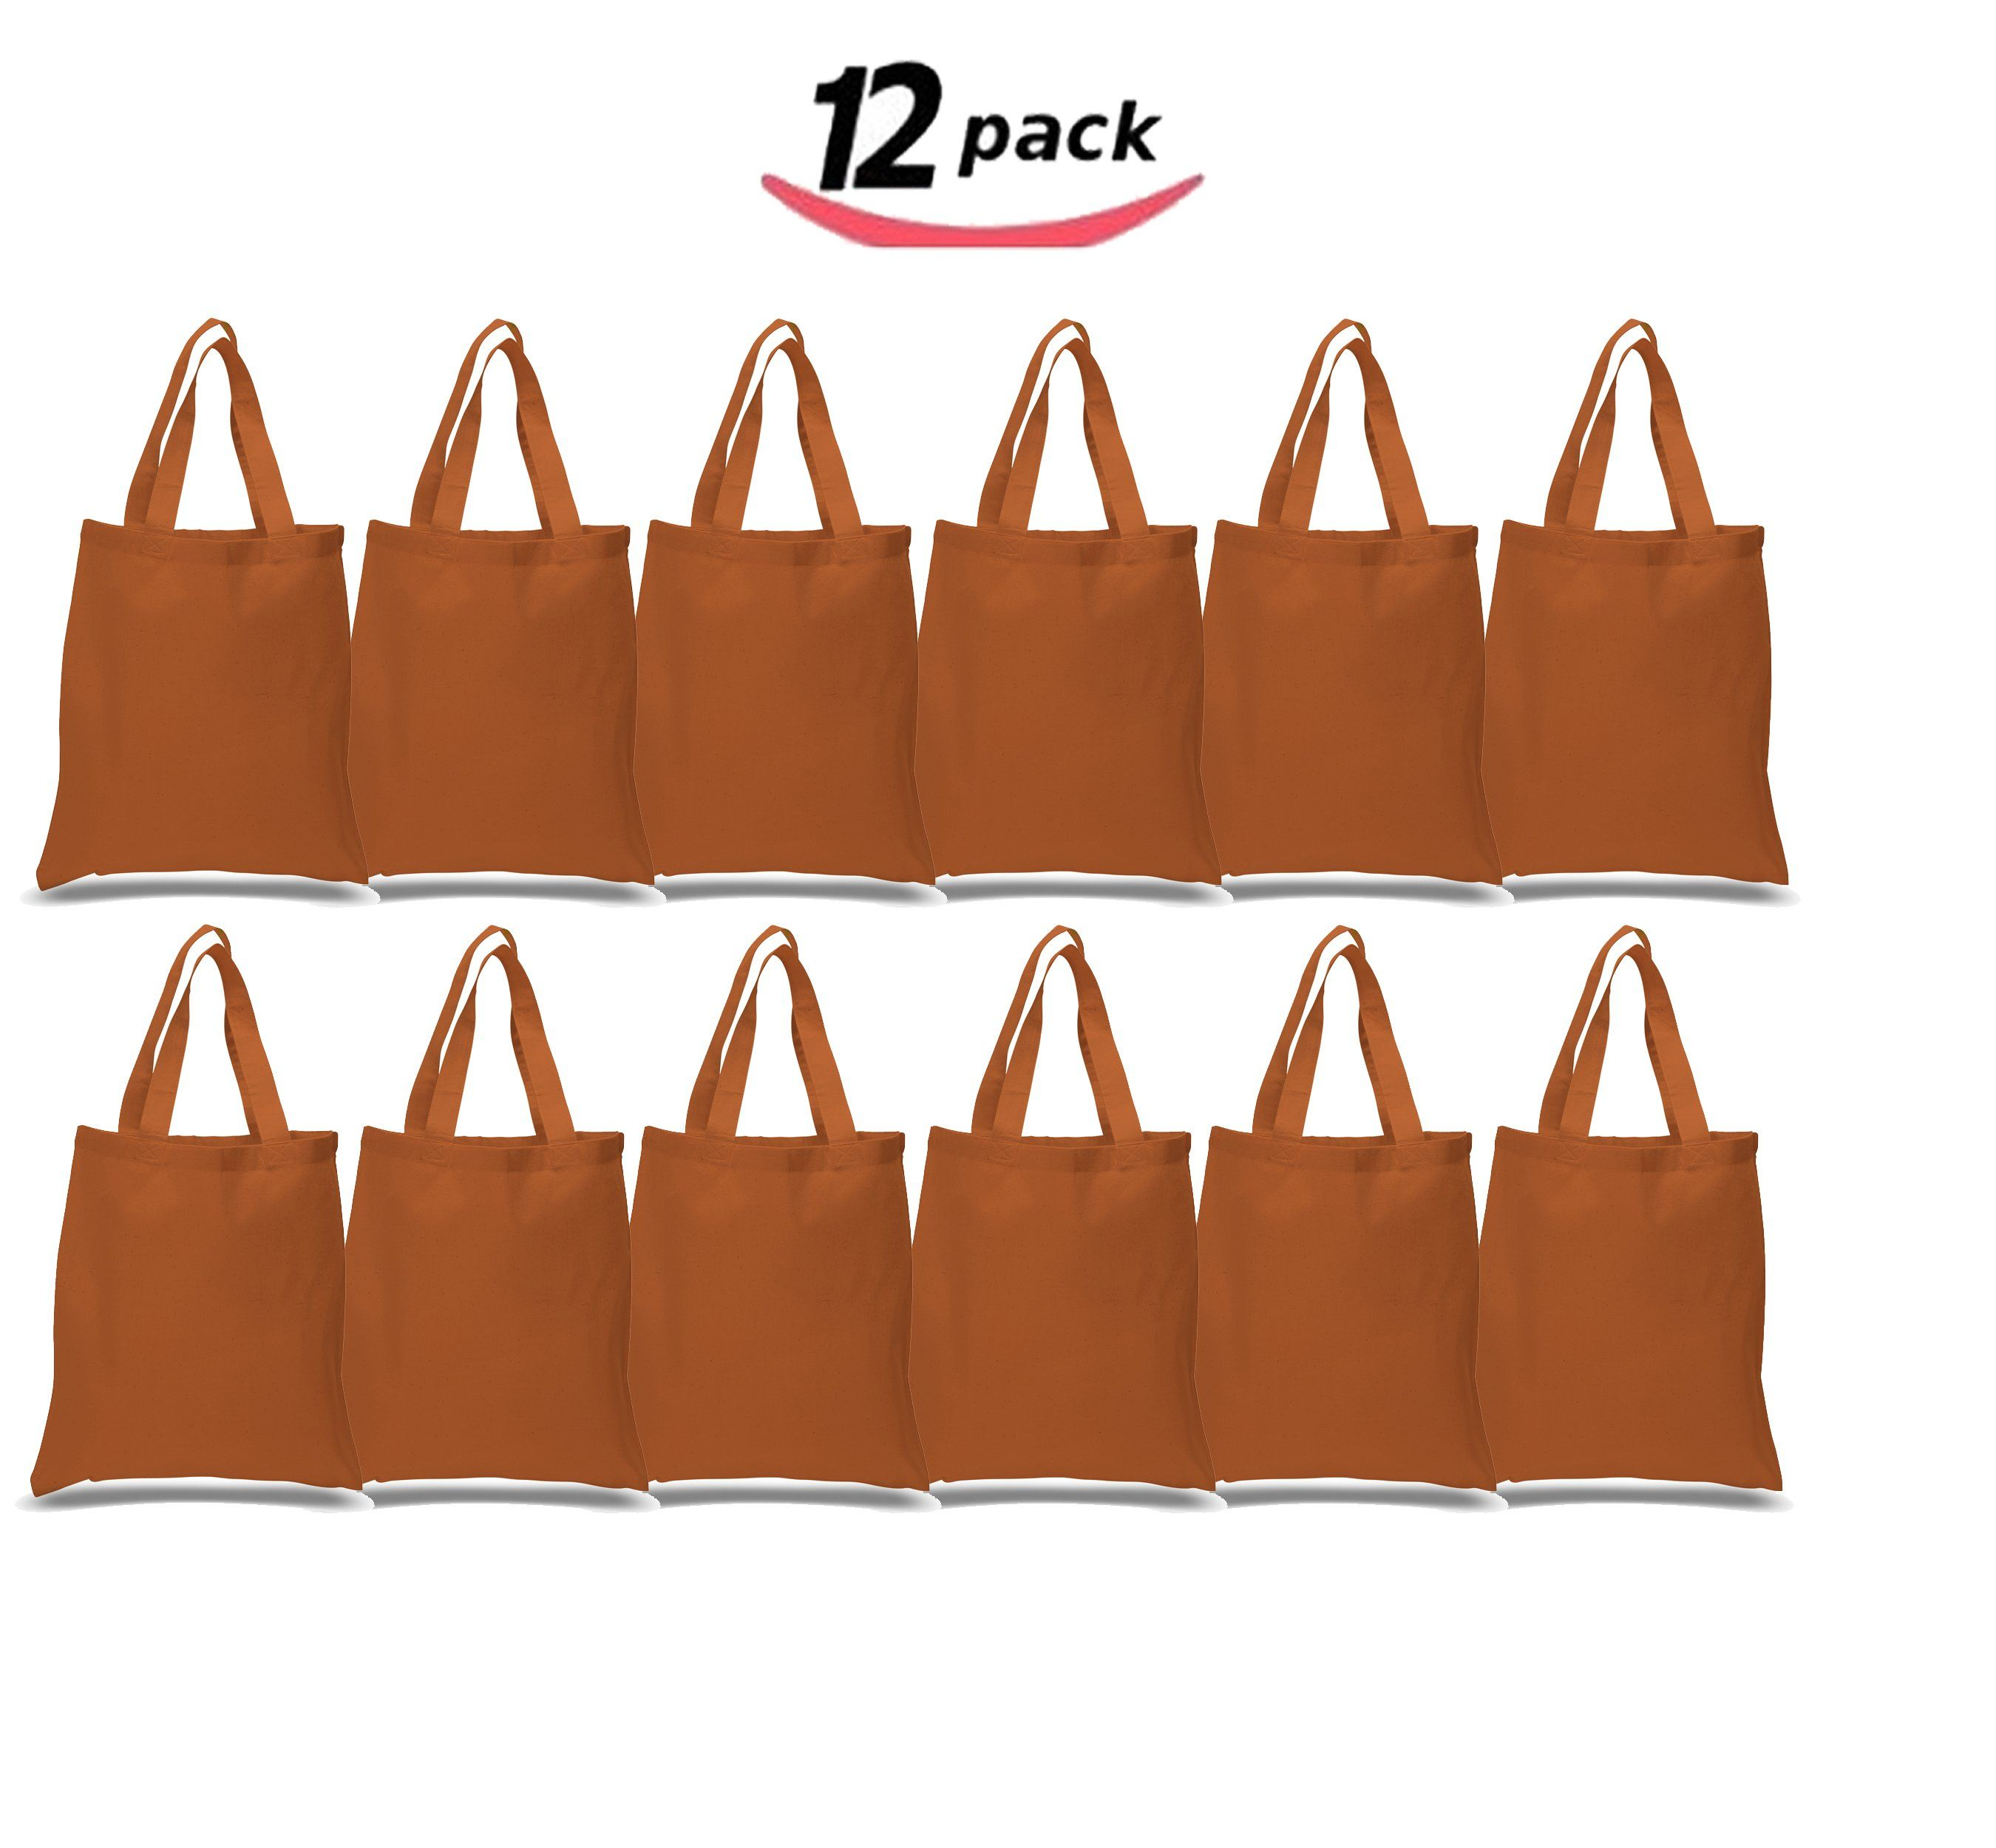 c768218e370c BagzDepot Canvas Tote Bags Wholesale - 12 Pack - Grocery Cotton Tote ...